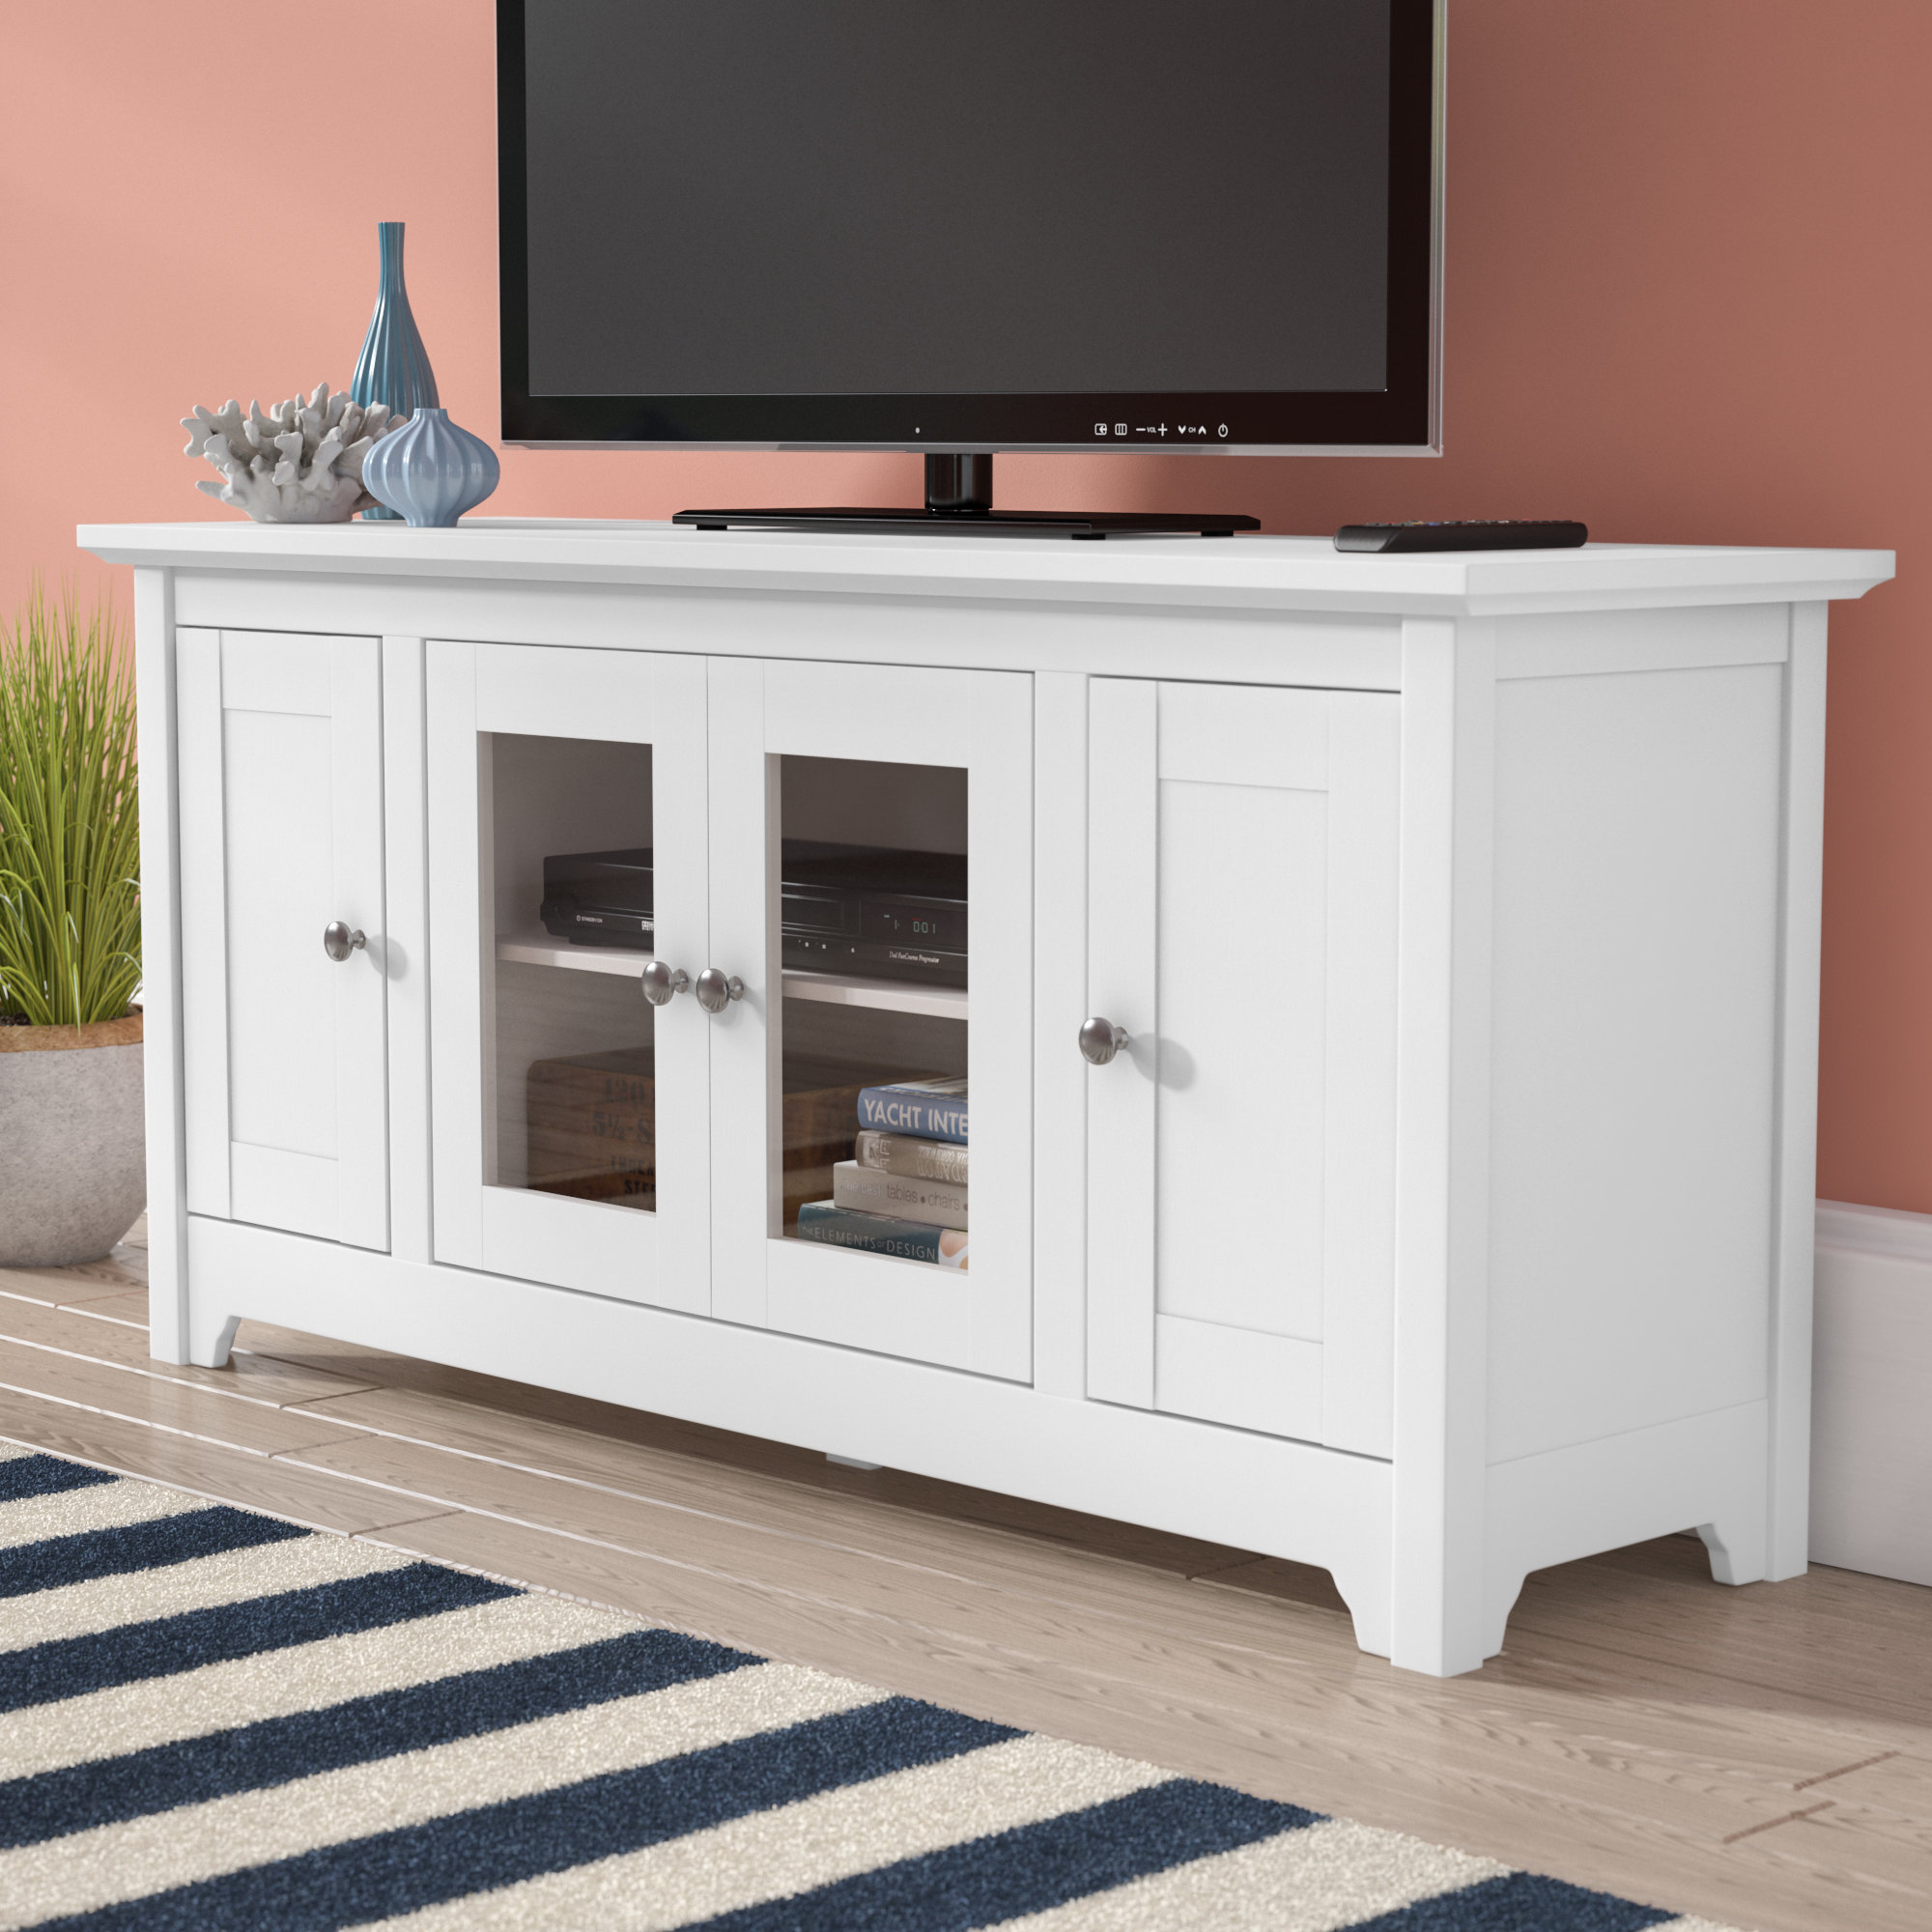 Longshore Tides | Birch Lane pertaining to Marvin Rustic Natural 60 Inch Tv Stands (Image 14 of 30)